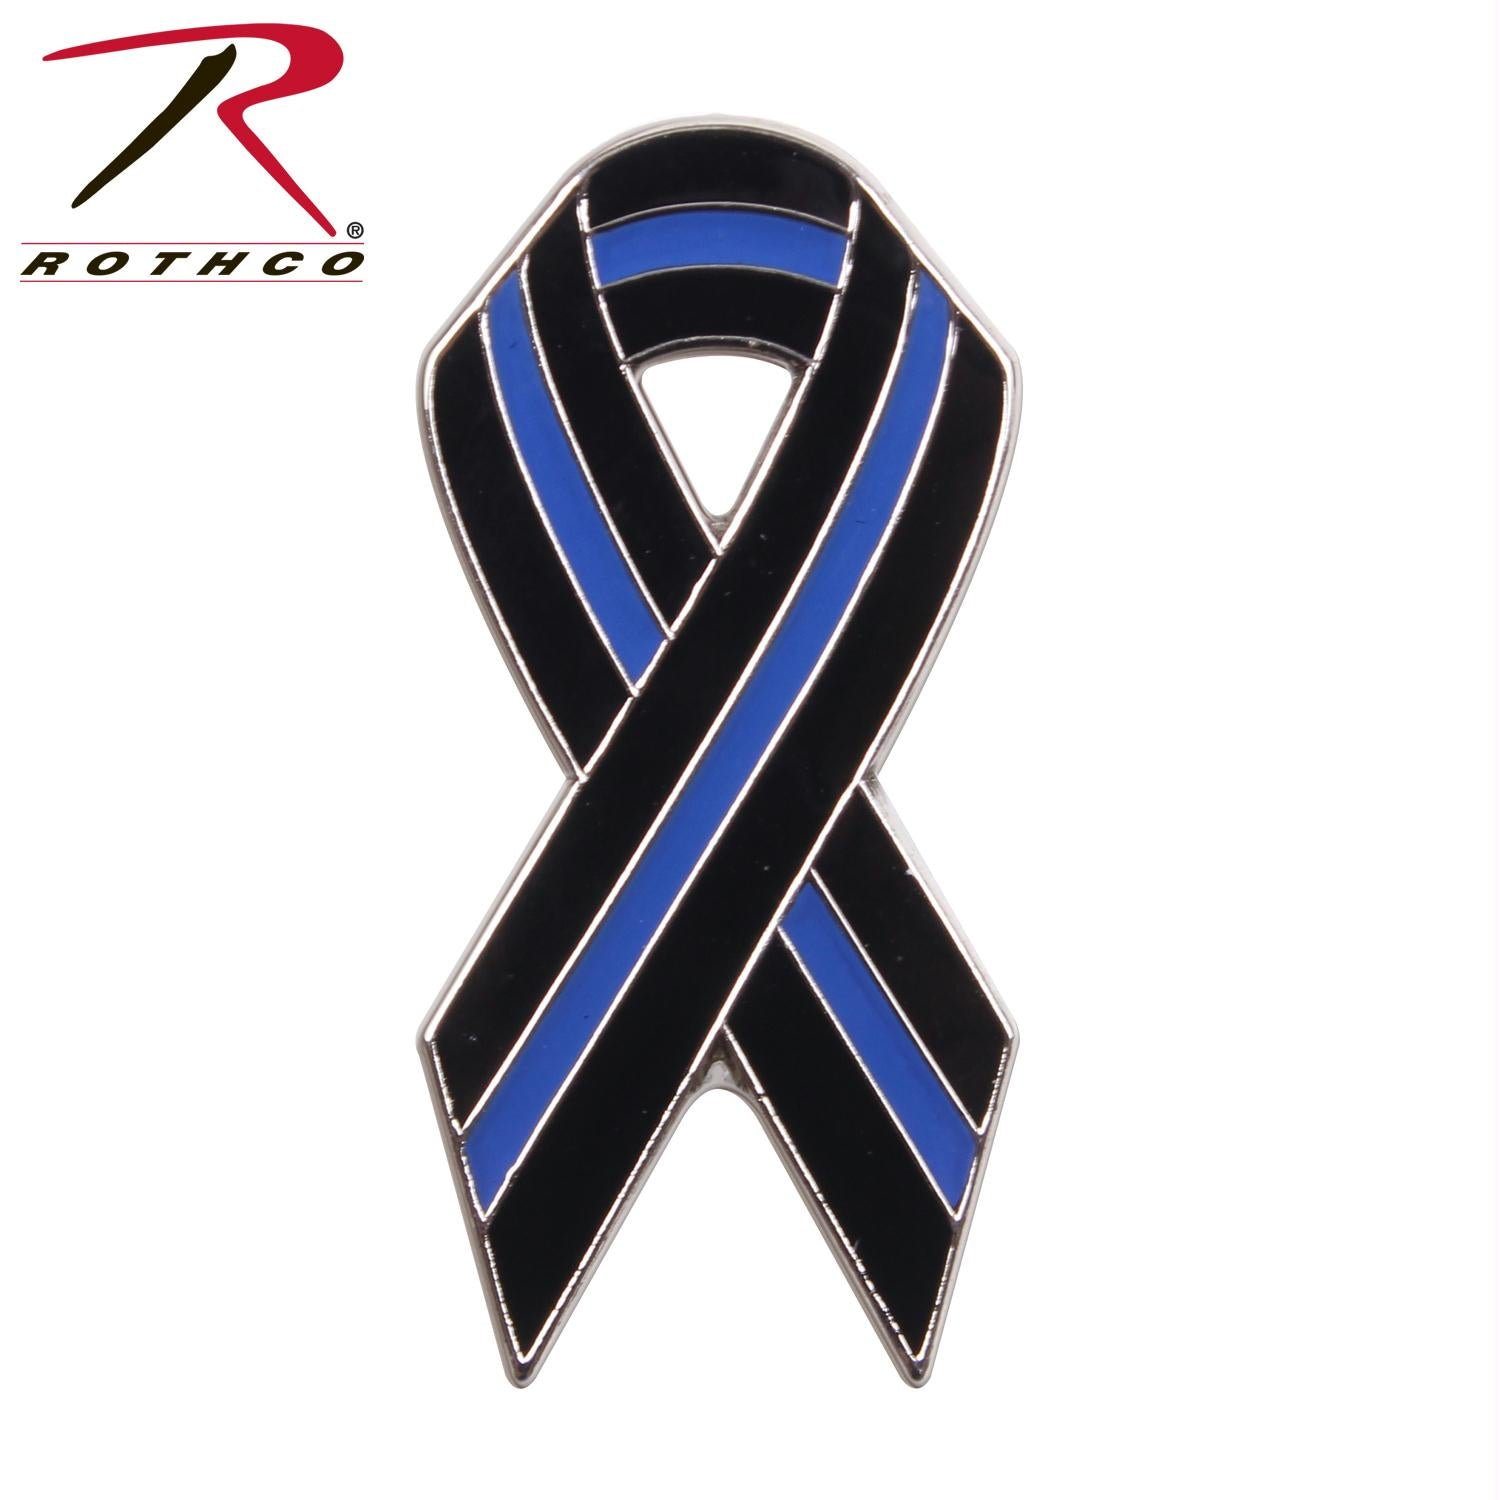 Rothco Thin Blue Line Ribbon Pin - Black / Blue / One Size